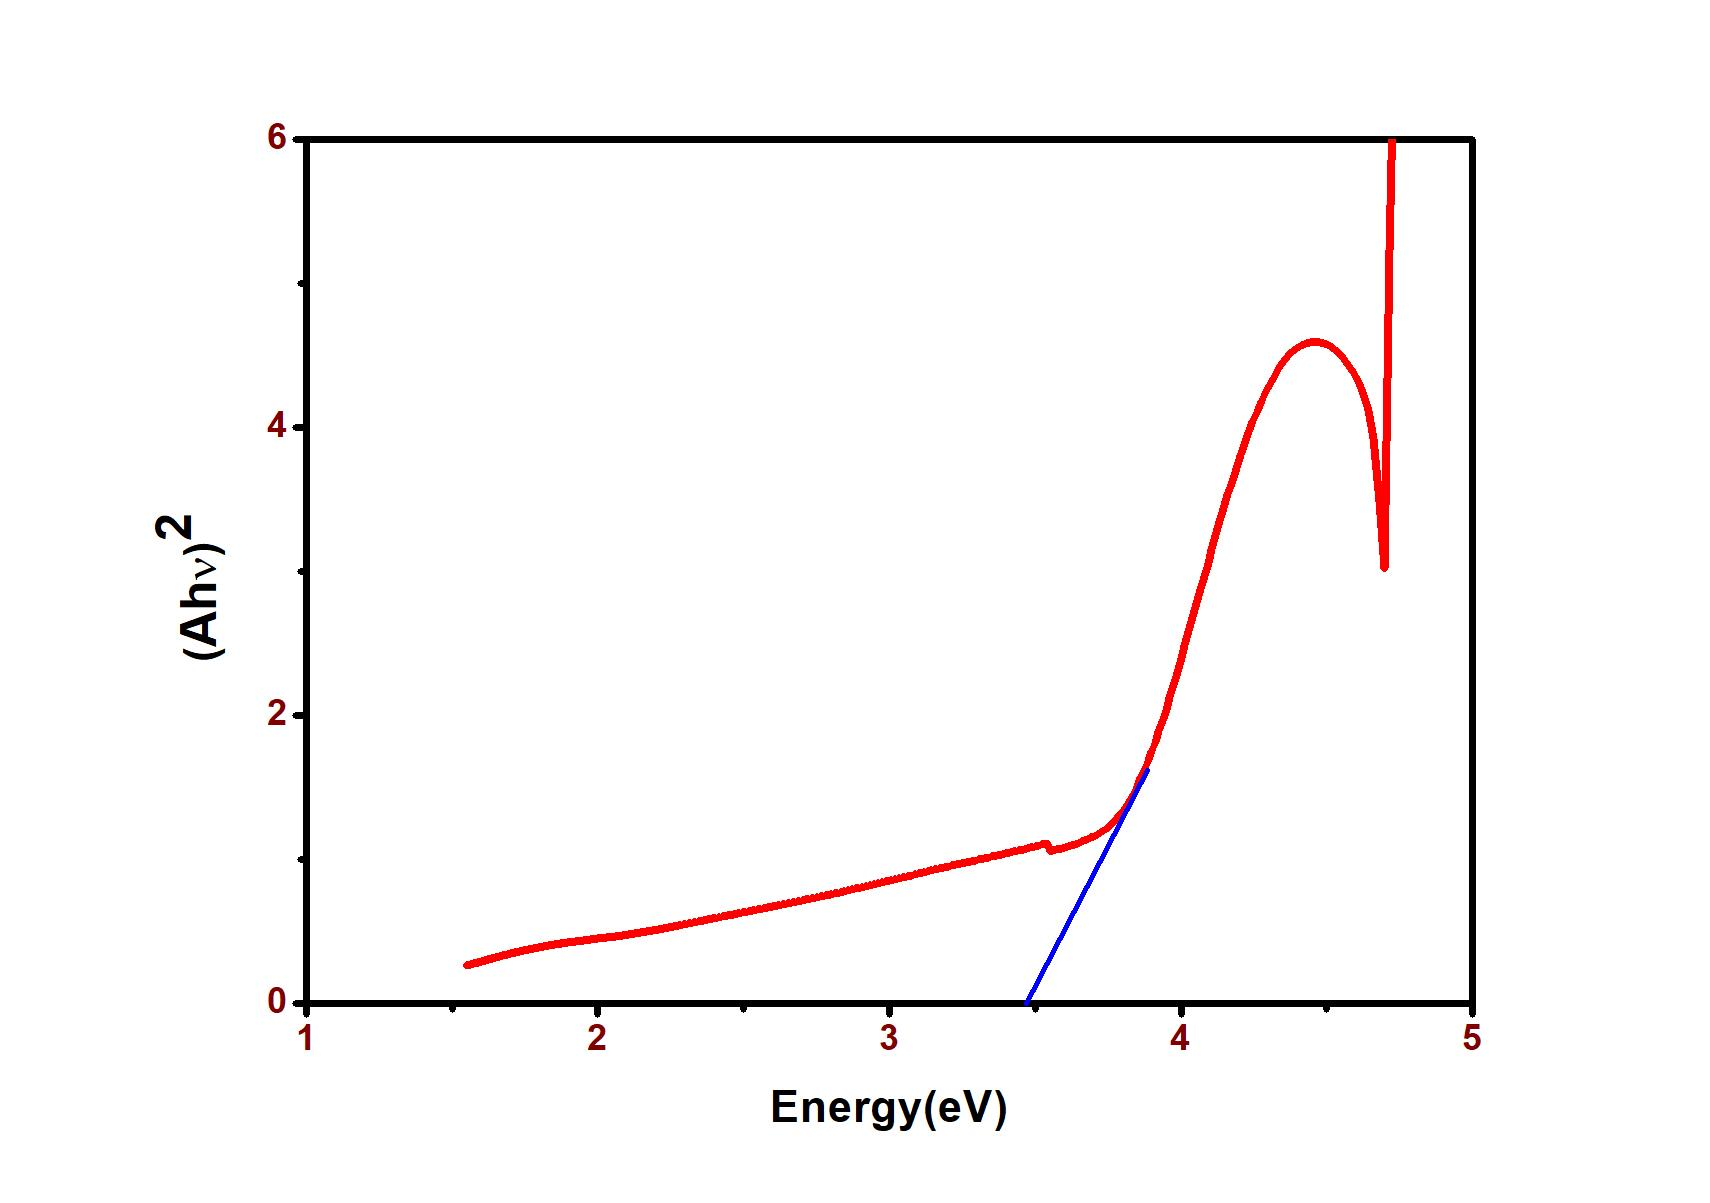 Ahv2 vs Energy f.jpg